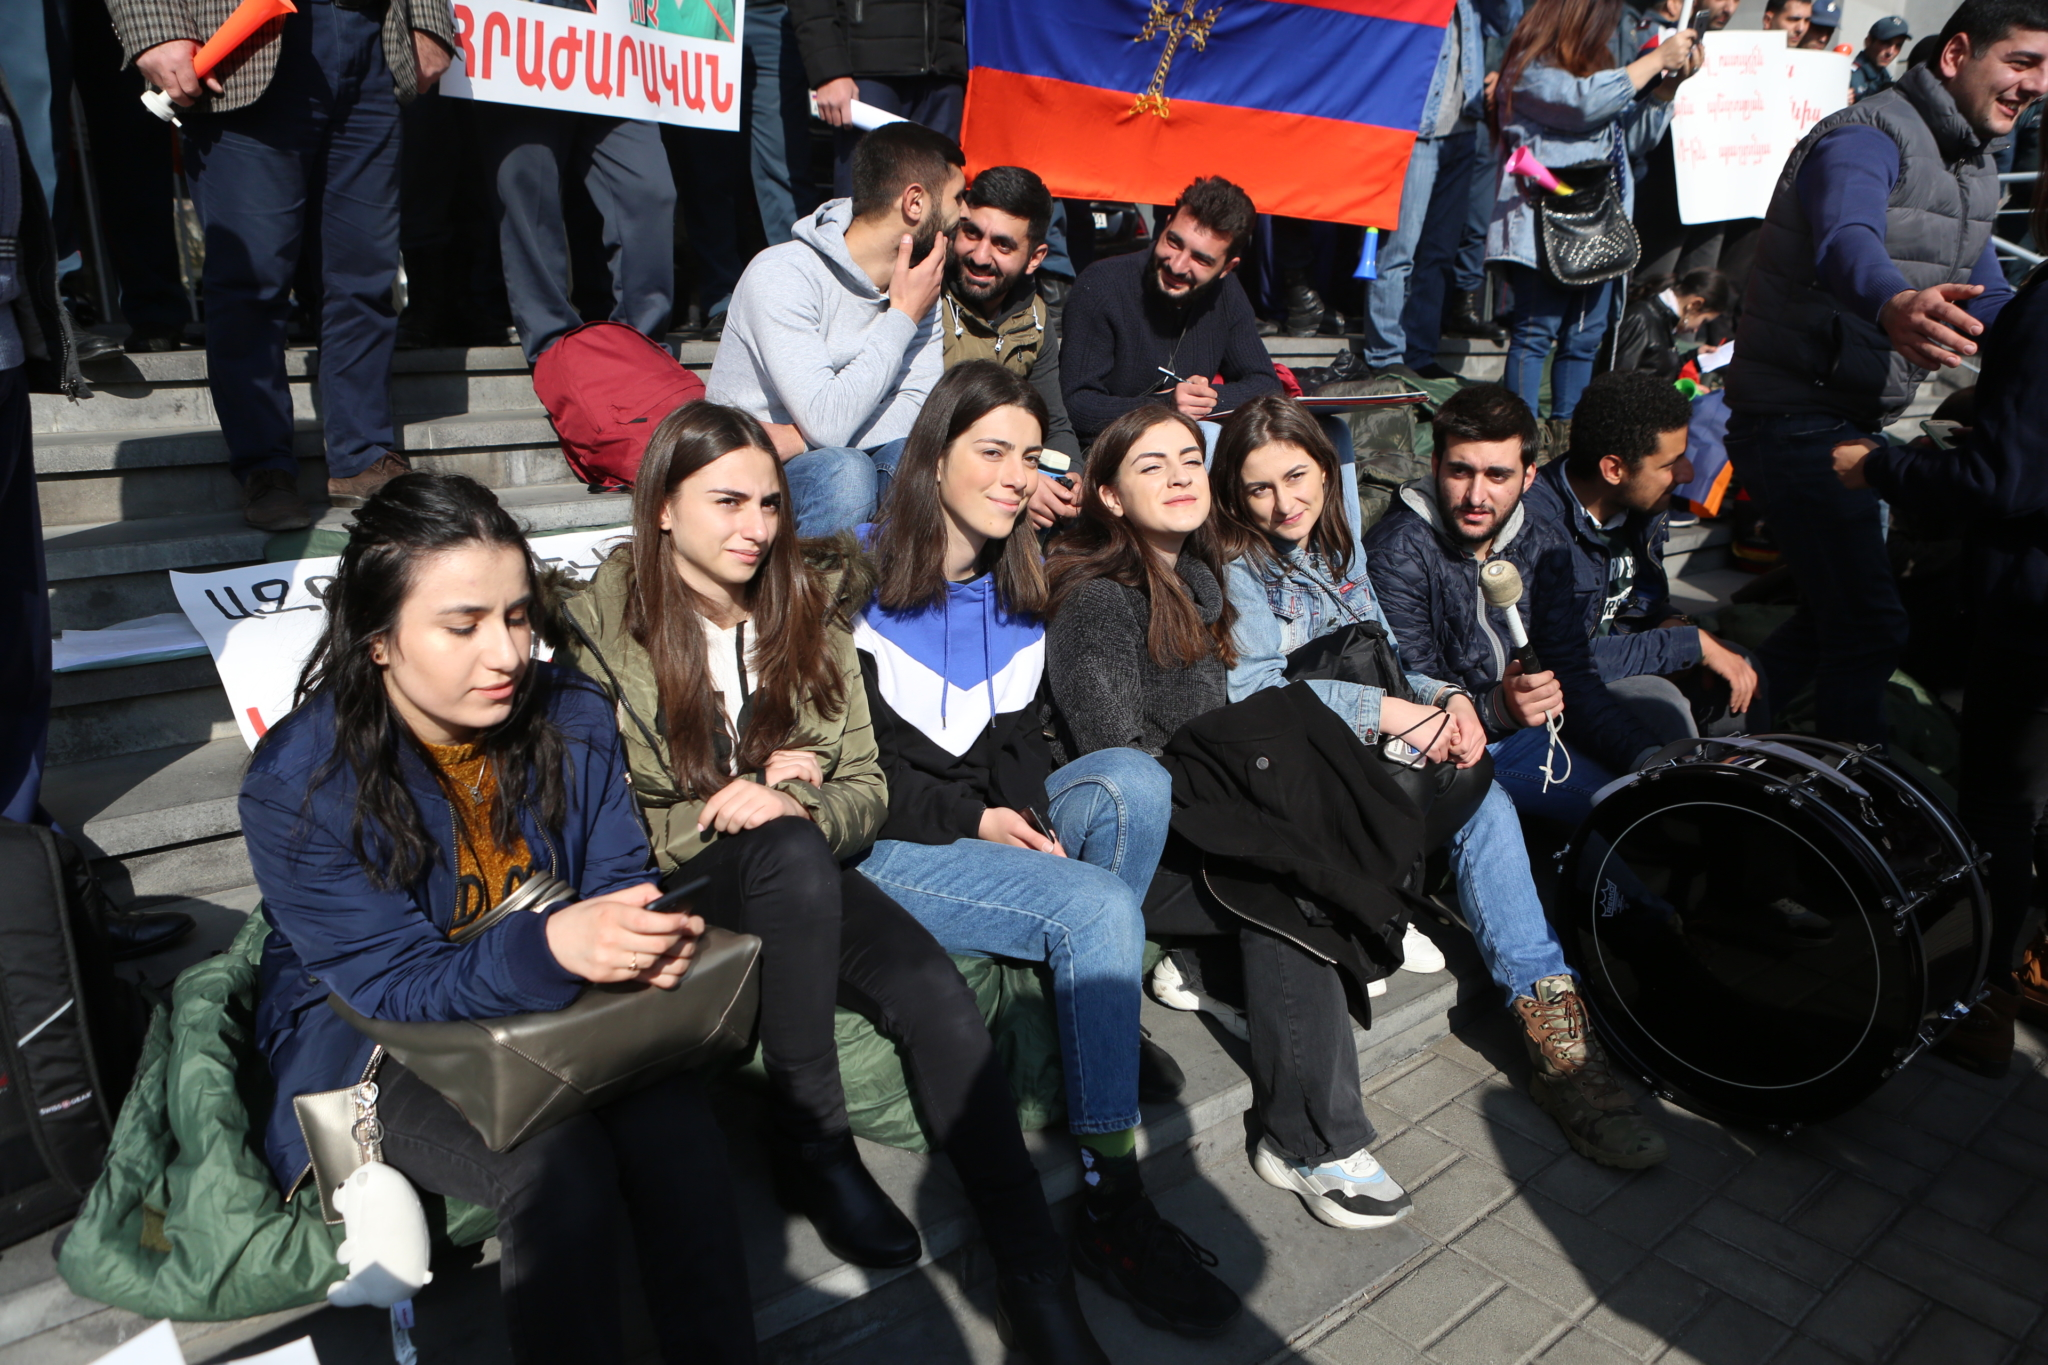 Armenian language, Armenian literature, Armenian history, Minister of Education, Araik Harutyunyan, optional subjects, optional subjects, strike, teachers, student, YSU, protest rally, faculty of philology, sit-down strike, dashnaks